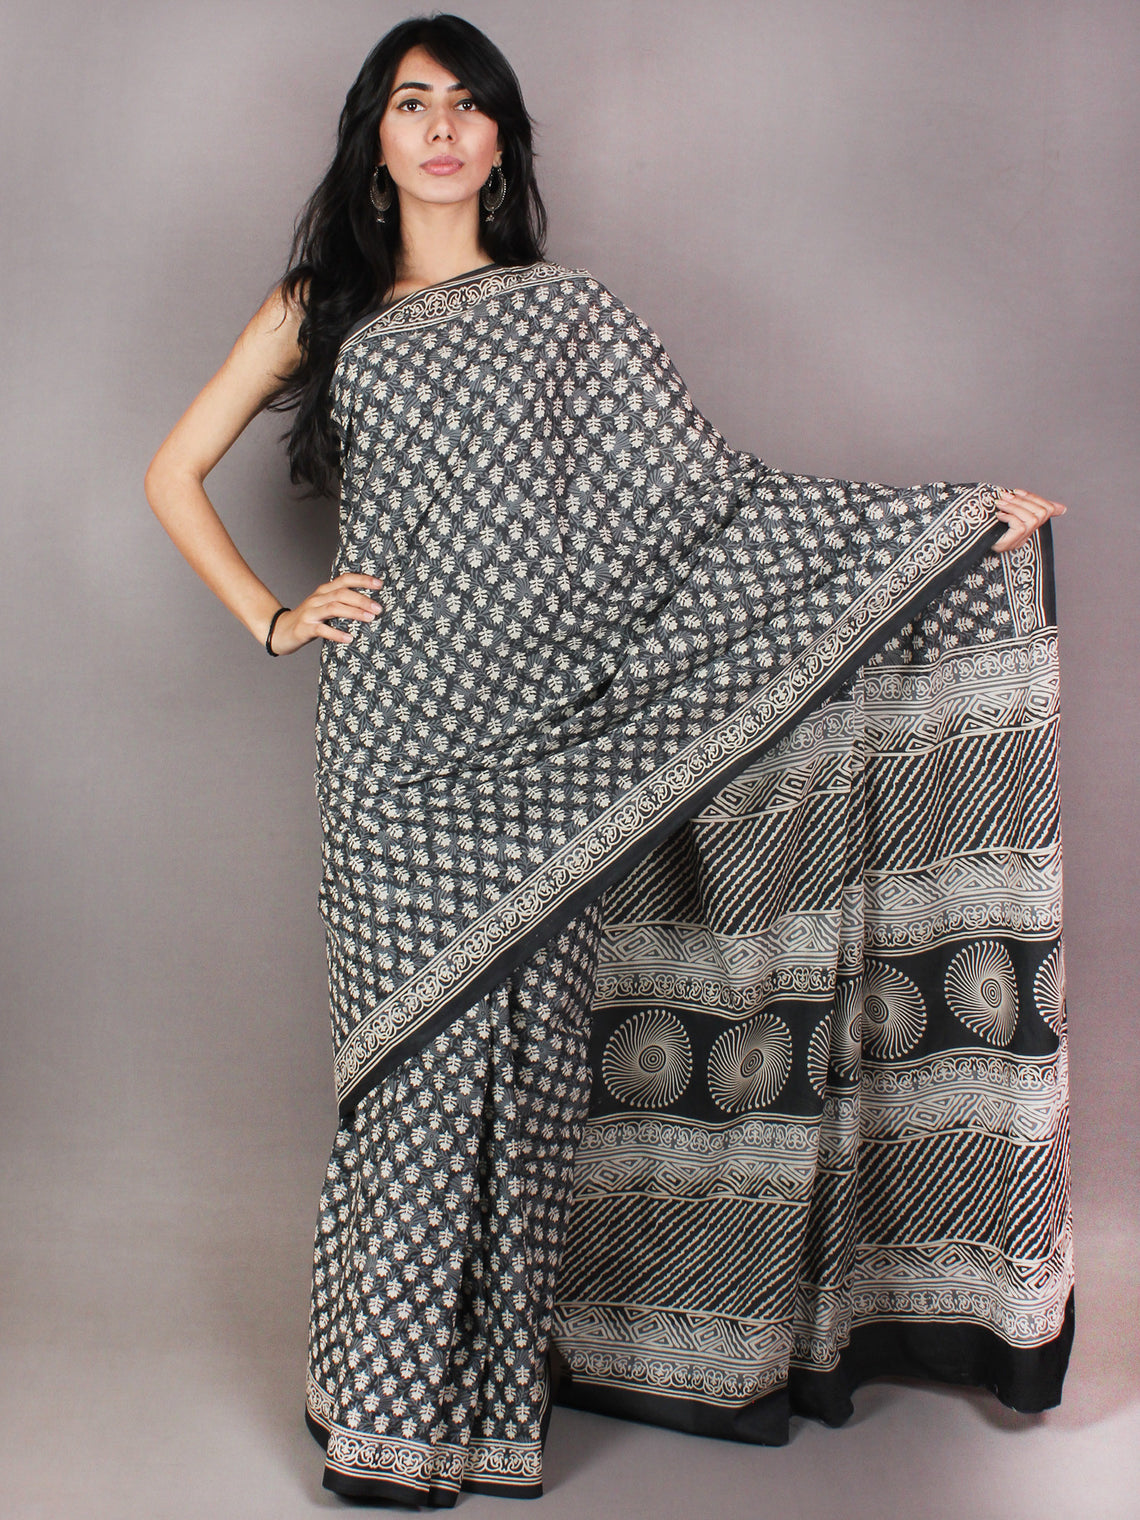 Black Ivory Hand Block Printed in Natural Colors Cotton Mul Saree - S03170707